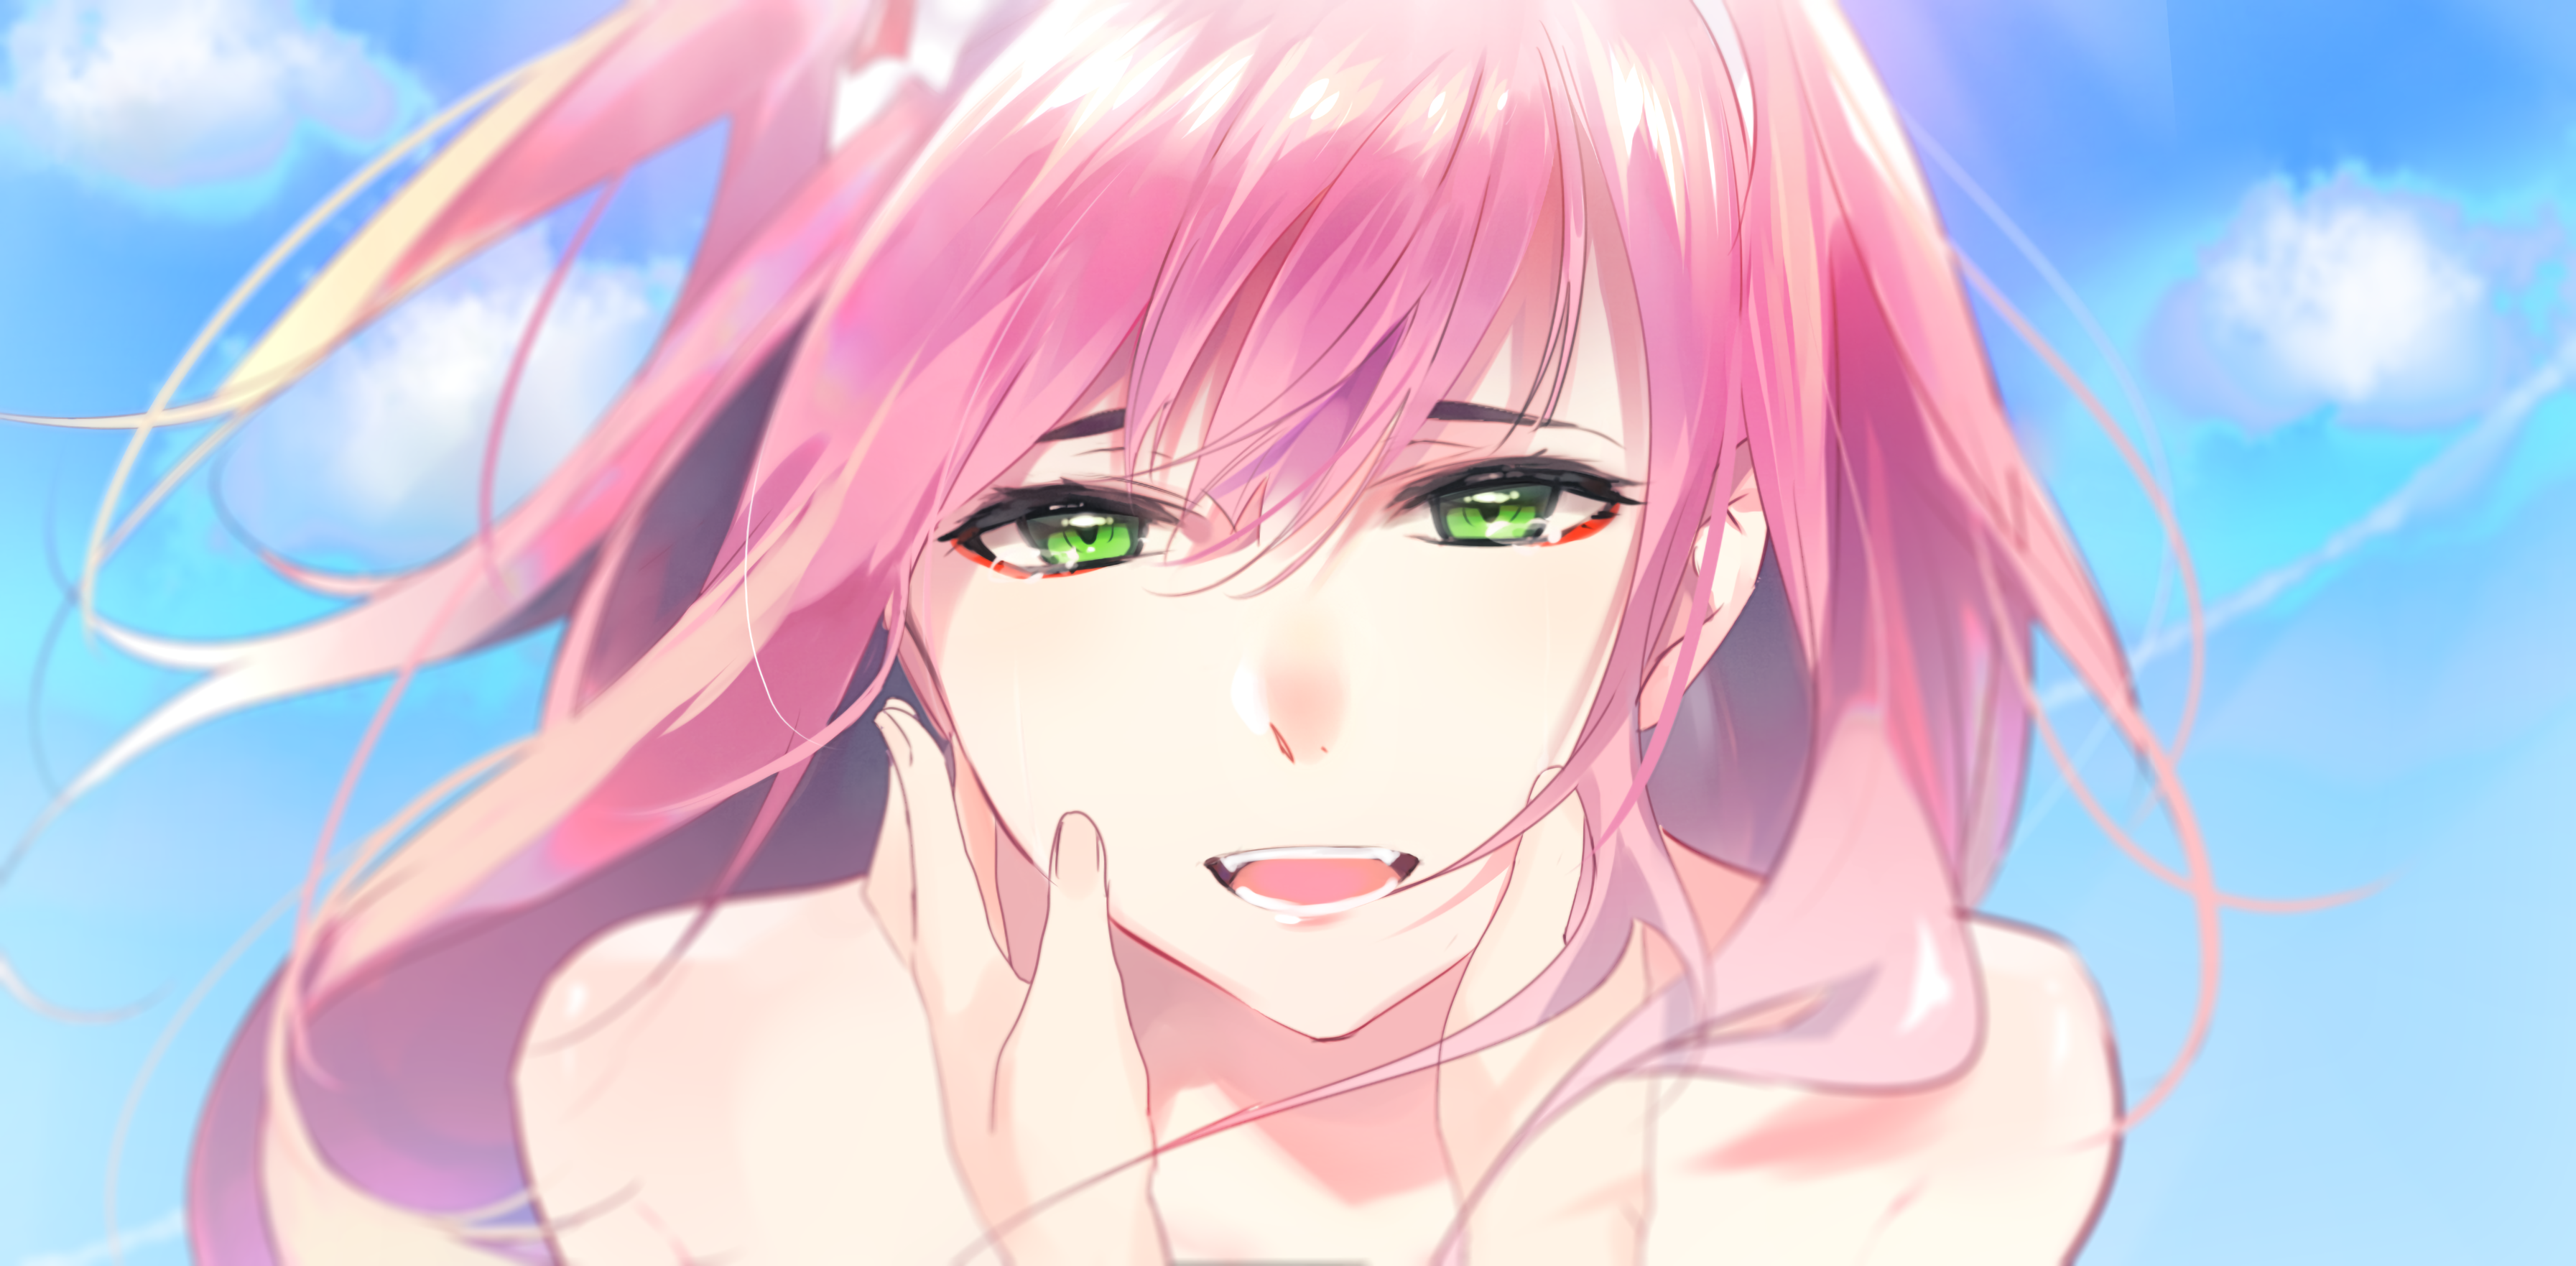 Anime 3586x1762 Zero Two (Darling in the FranXX) Code:002 Strelizia (DARLING in the FRANXX) Strelitzia Darling in the FranXX anime anime girls green eyes pink hair long hair fangs